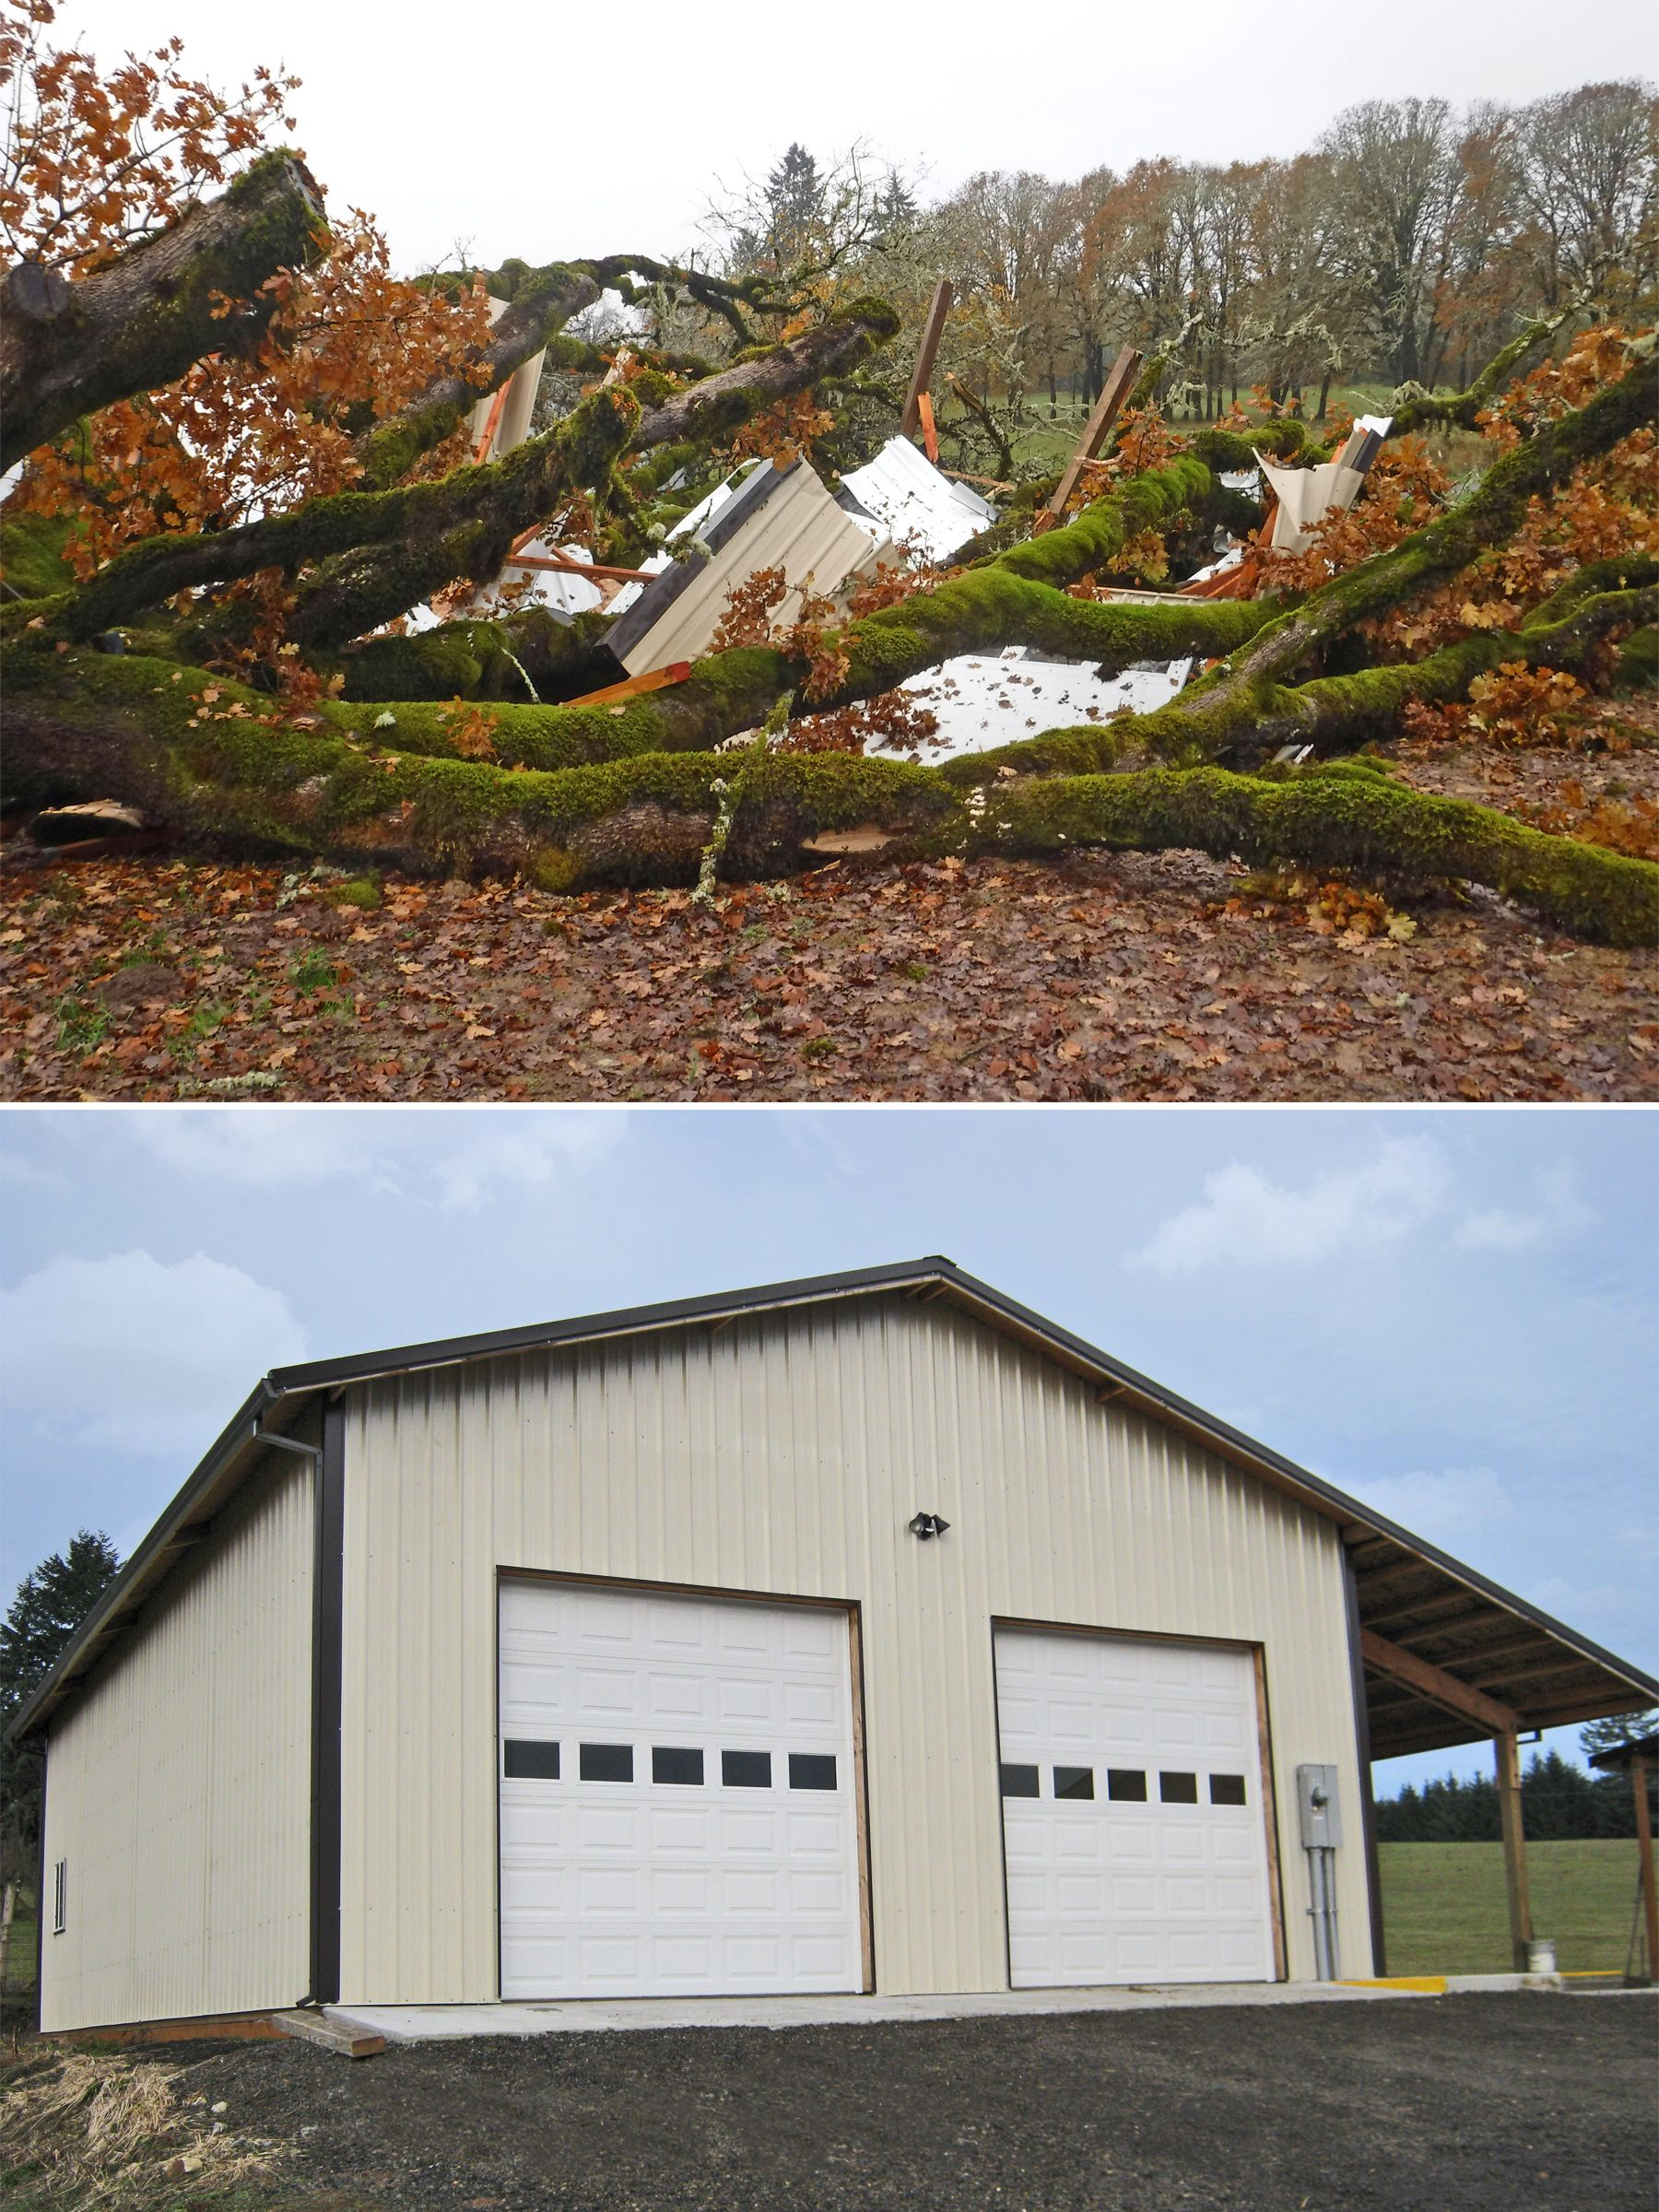 medium resolution of before and after shot of a 32 x 48 x 14 agricultural building that was destroyed by a falling tree www econofabbuildings com